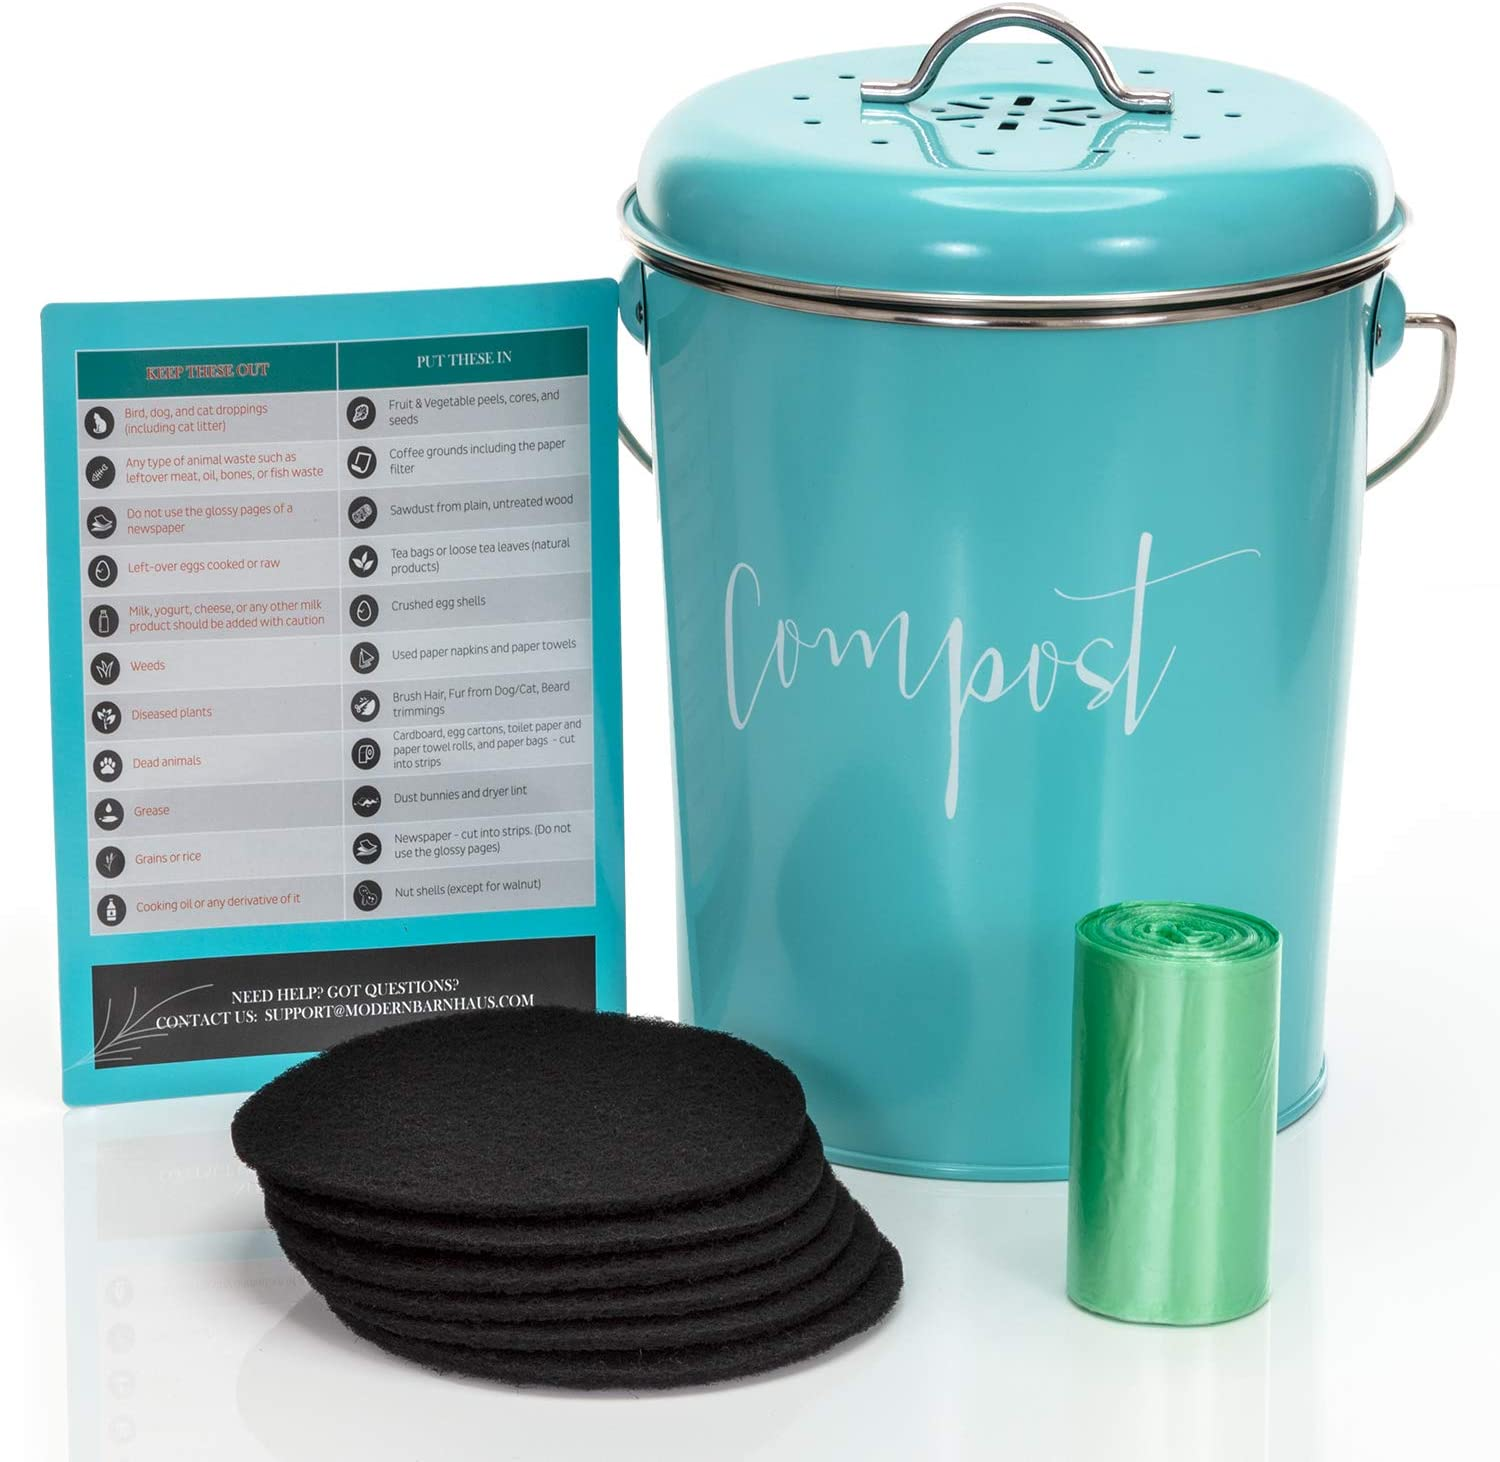 Amazon Com Compost Bin For Kitchen Counter Stainless Steel Countertop Compost Container As 1 3 Gallon Indoor Compost Bucket Or Counter Composter Pail With Lid 50 Compost Bags And 6 Charcoal Filters Turquoise